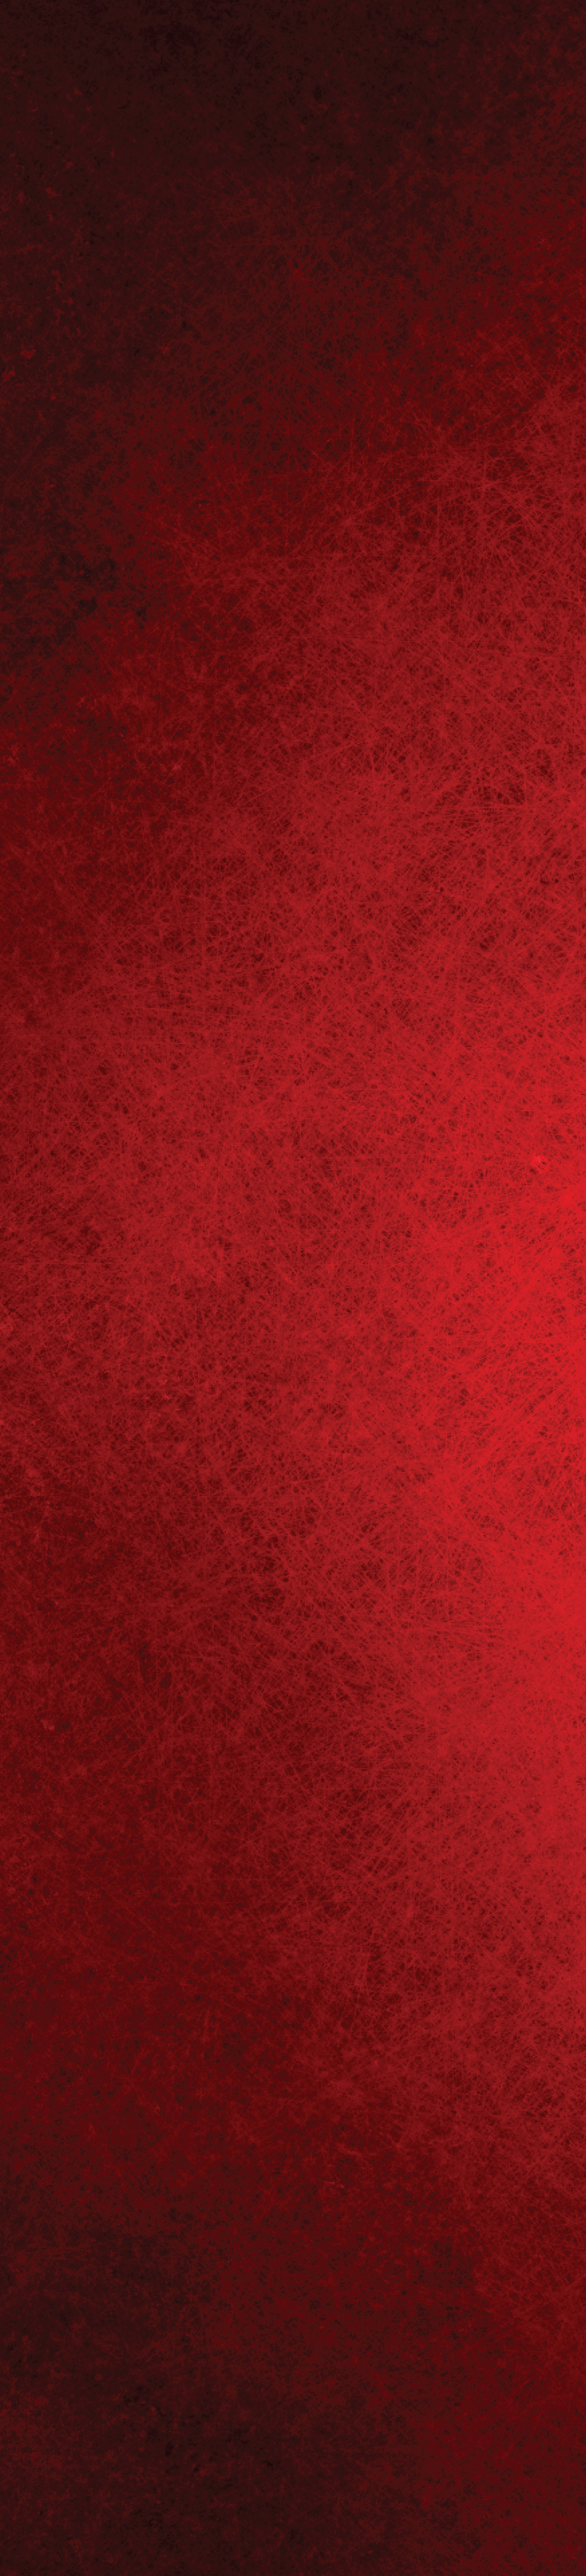 BACKGROUND 4-01.png